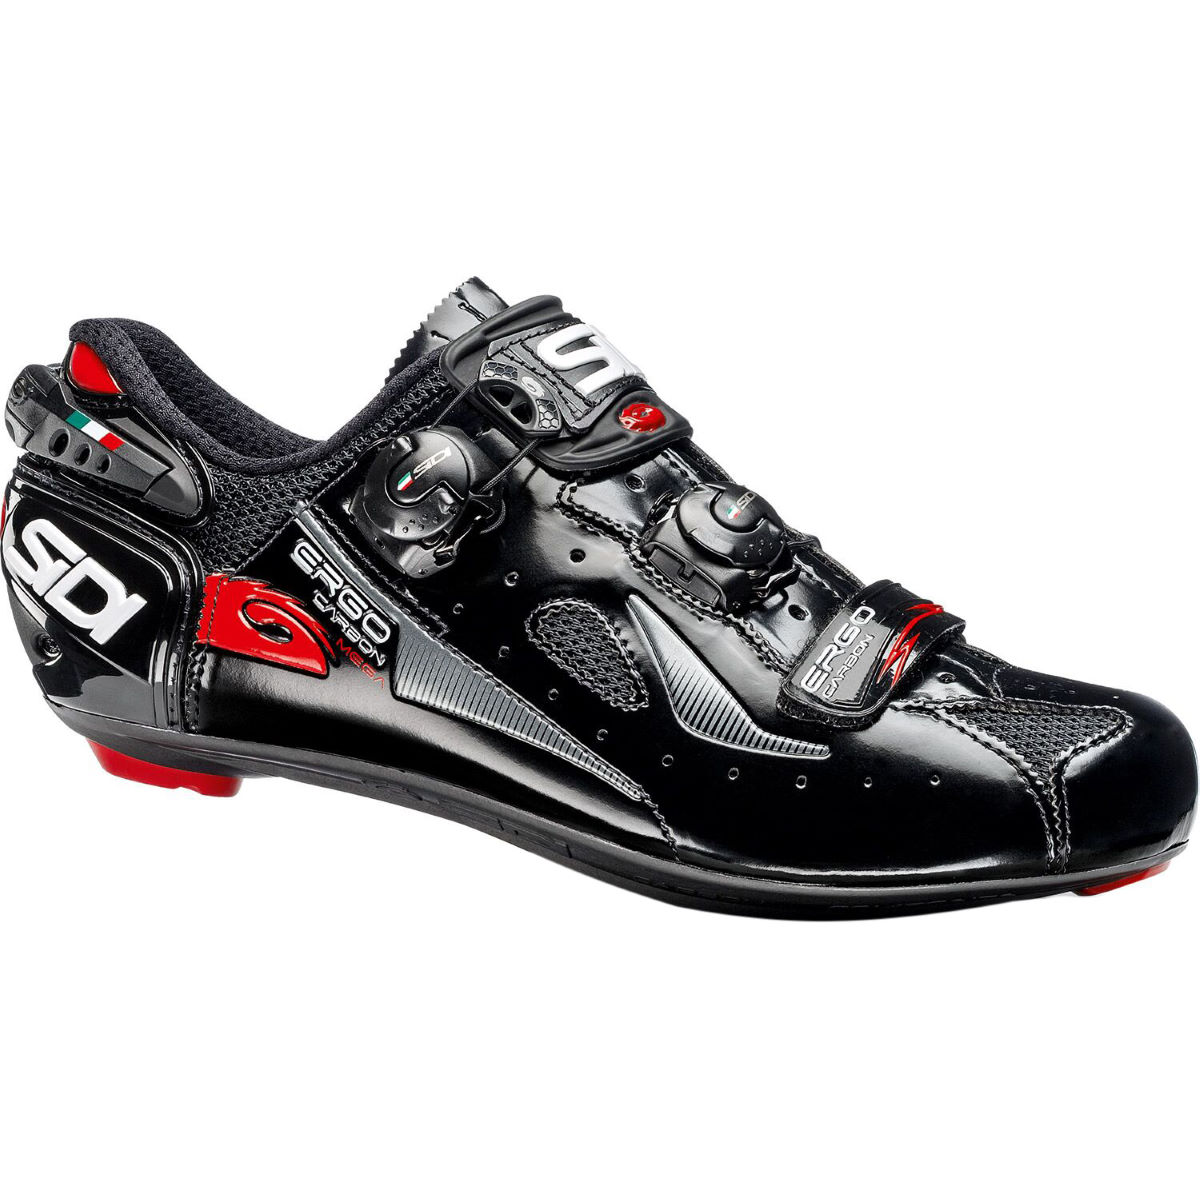 Chaussures de route Sidi Ergo 4 (carbone, coupe Mega/large) - 40